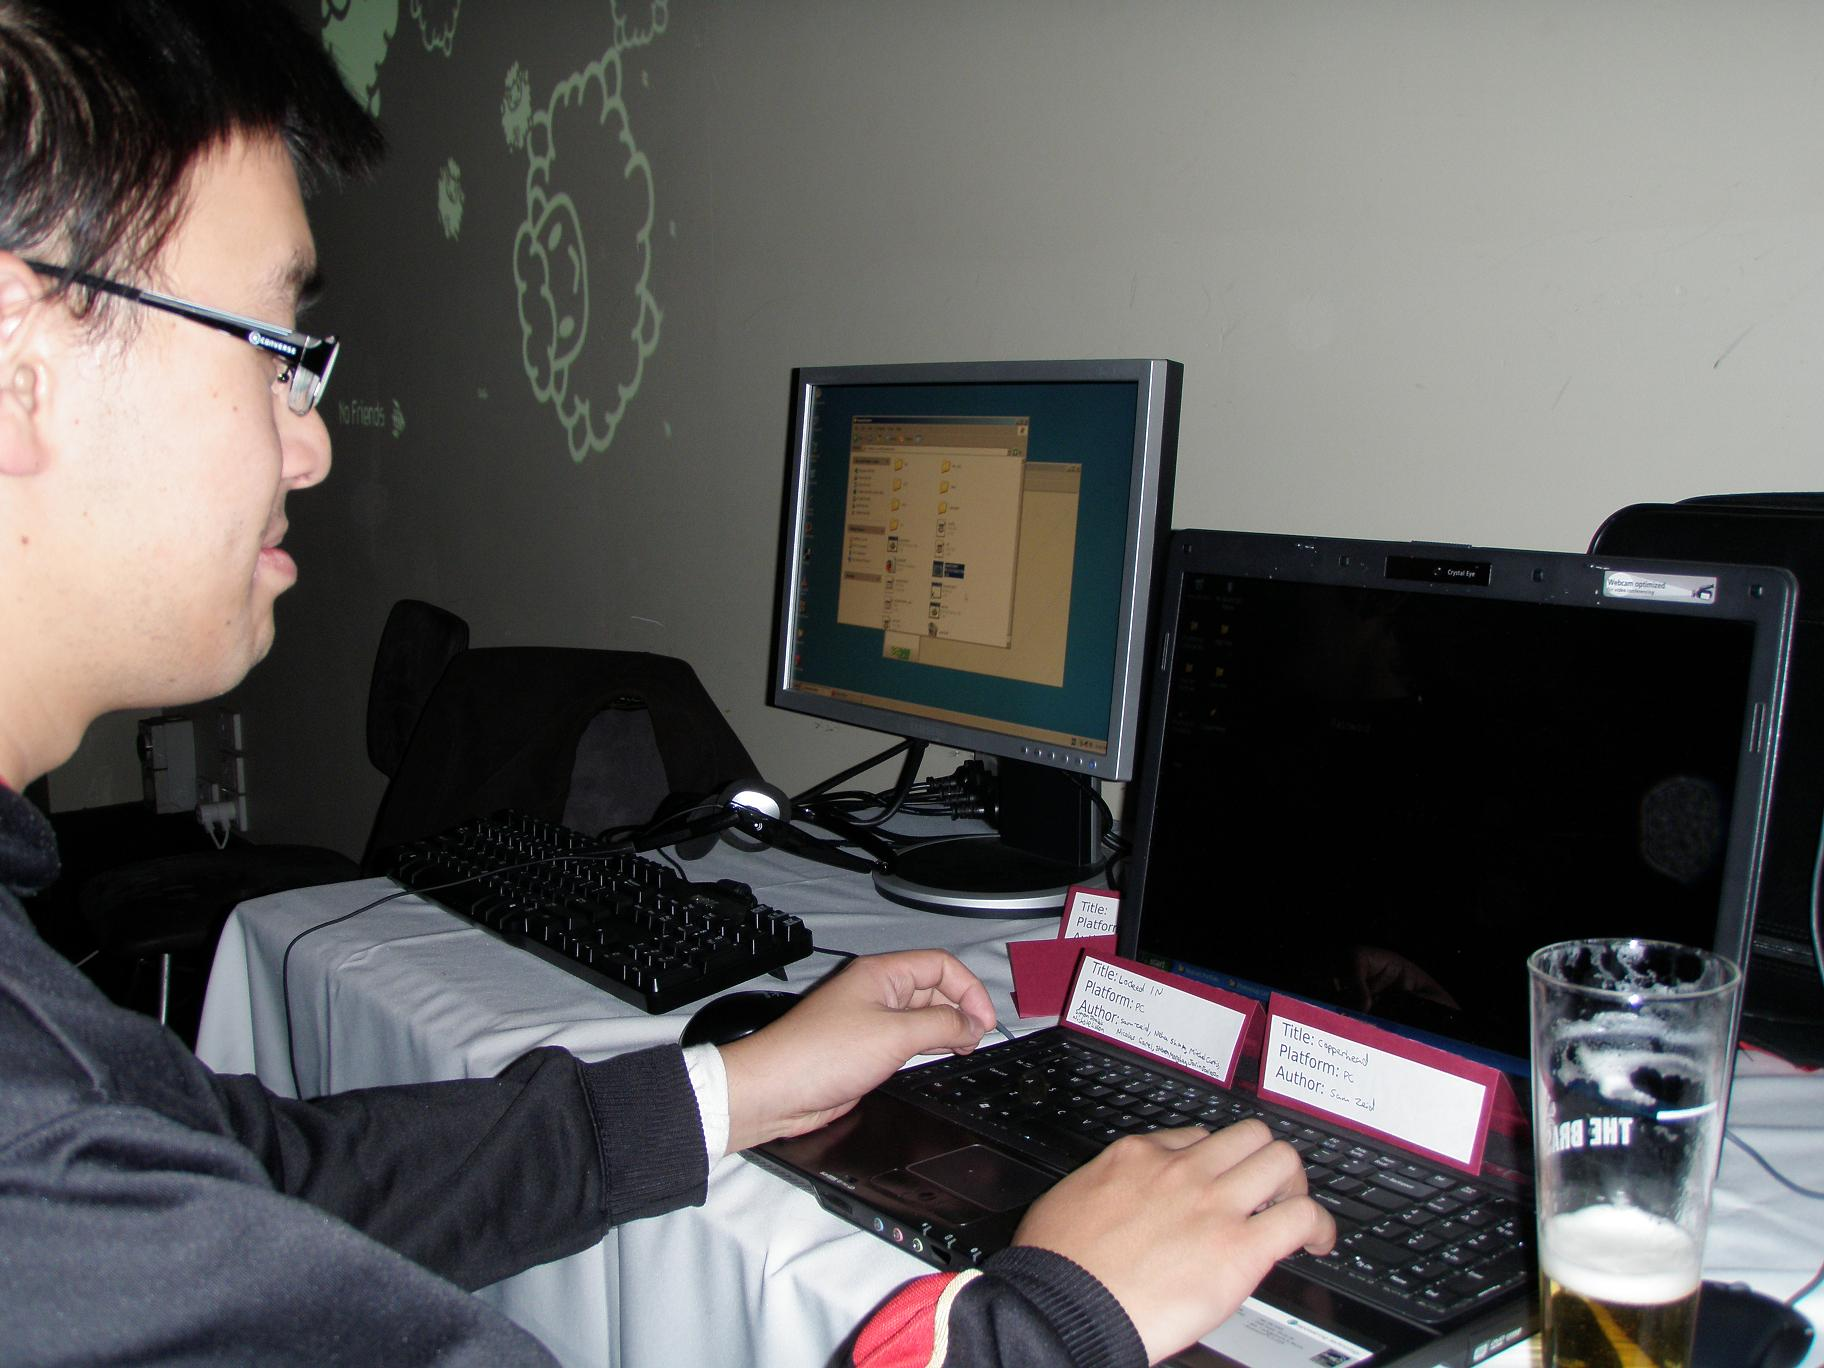 A person play testing a game.